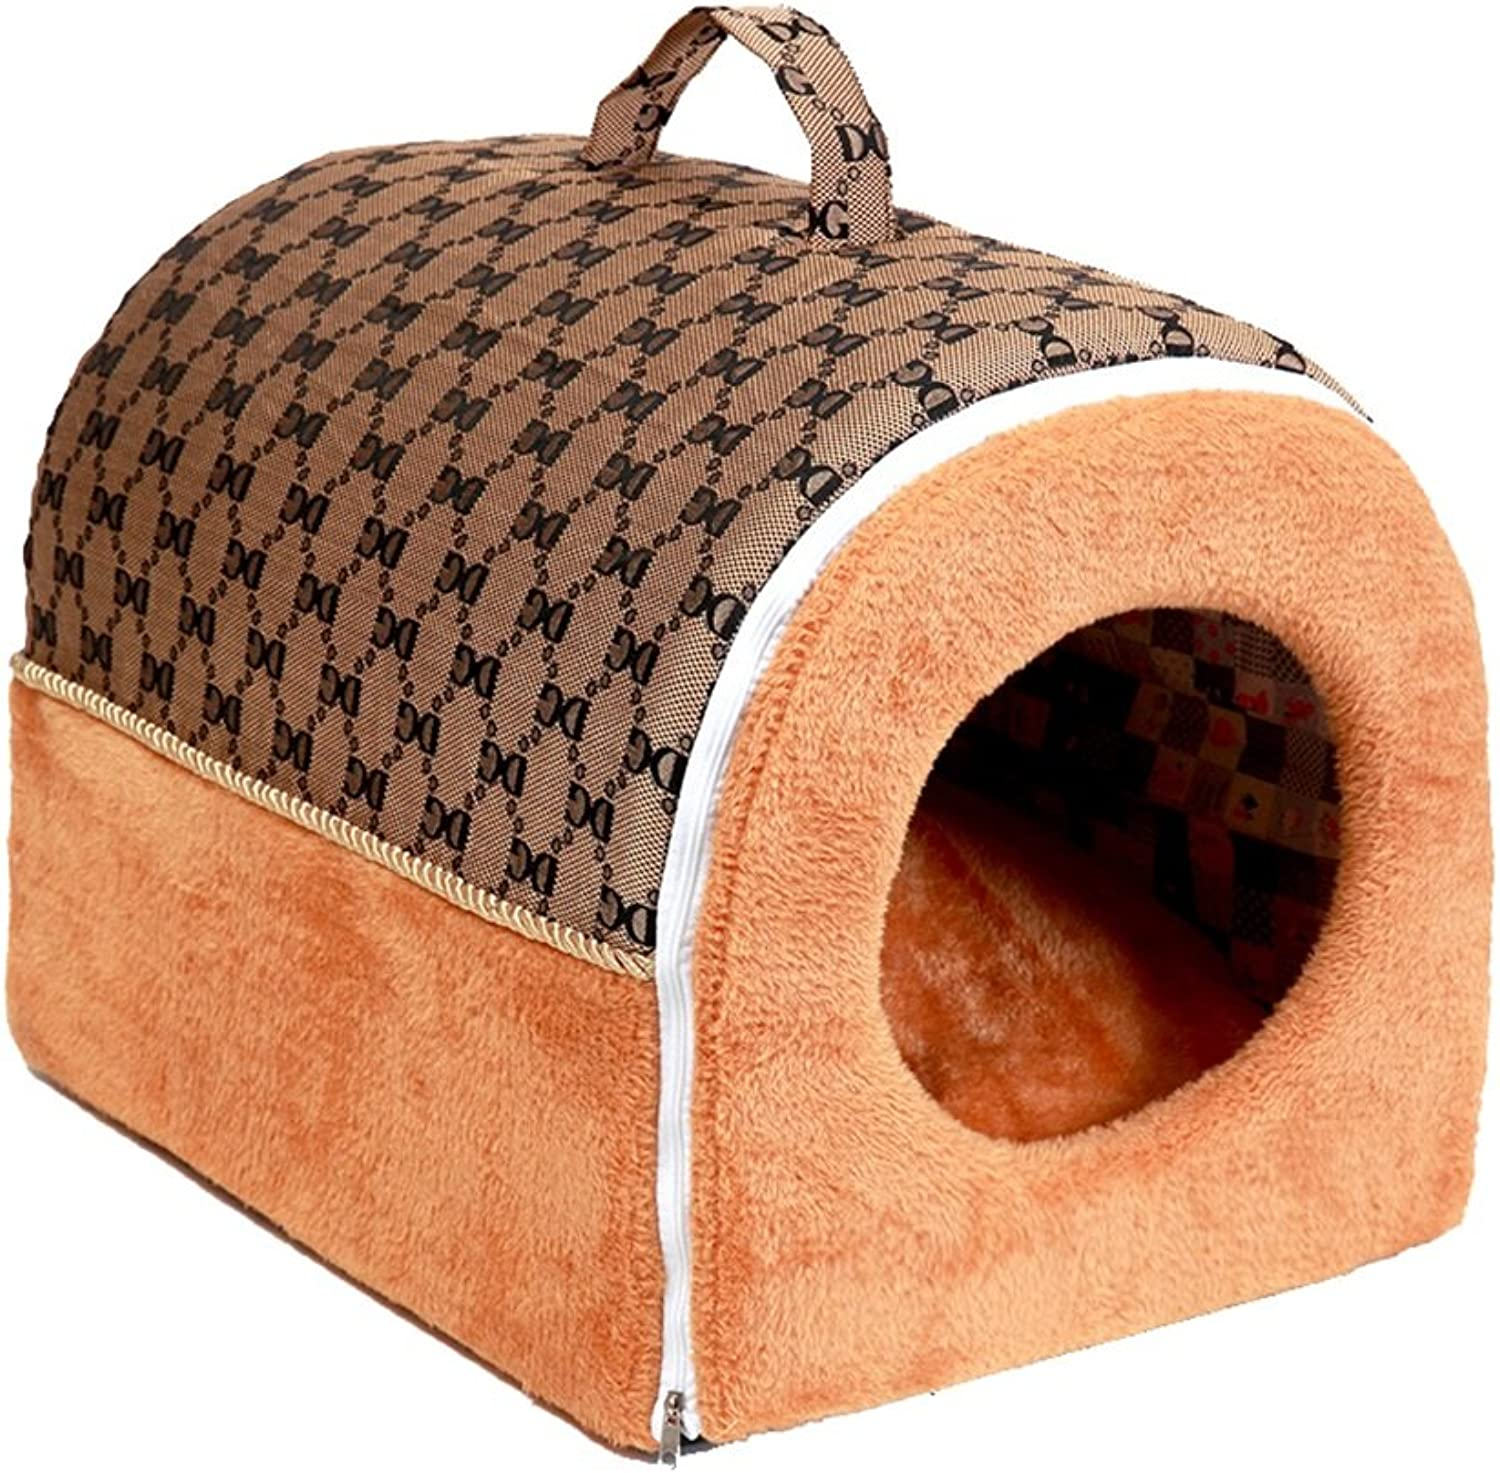 Dog Bed Cat House Portable dog house Removable and washable pet pad Pet supplies (color   B, Size   554743cm)